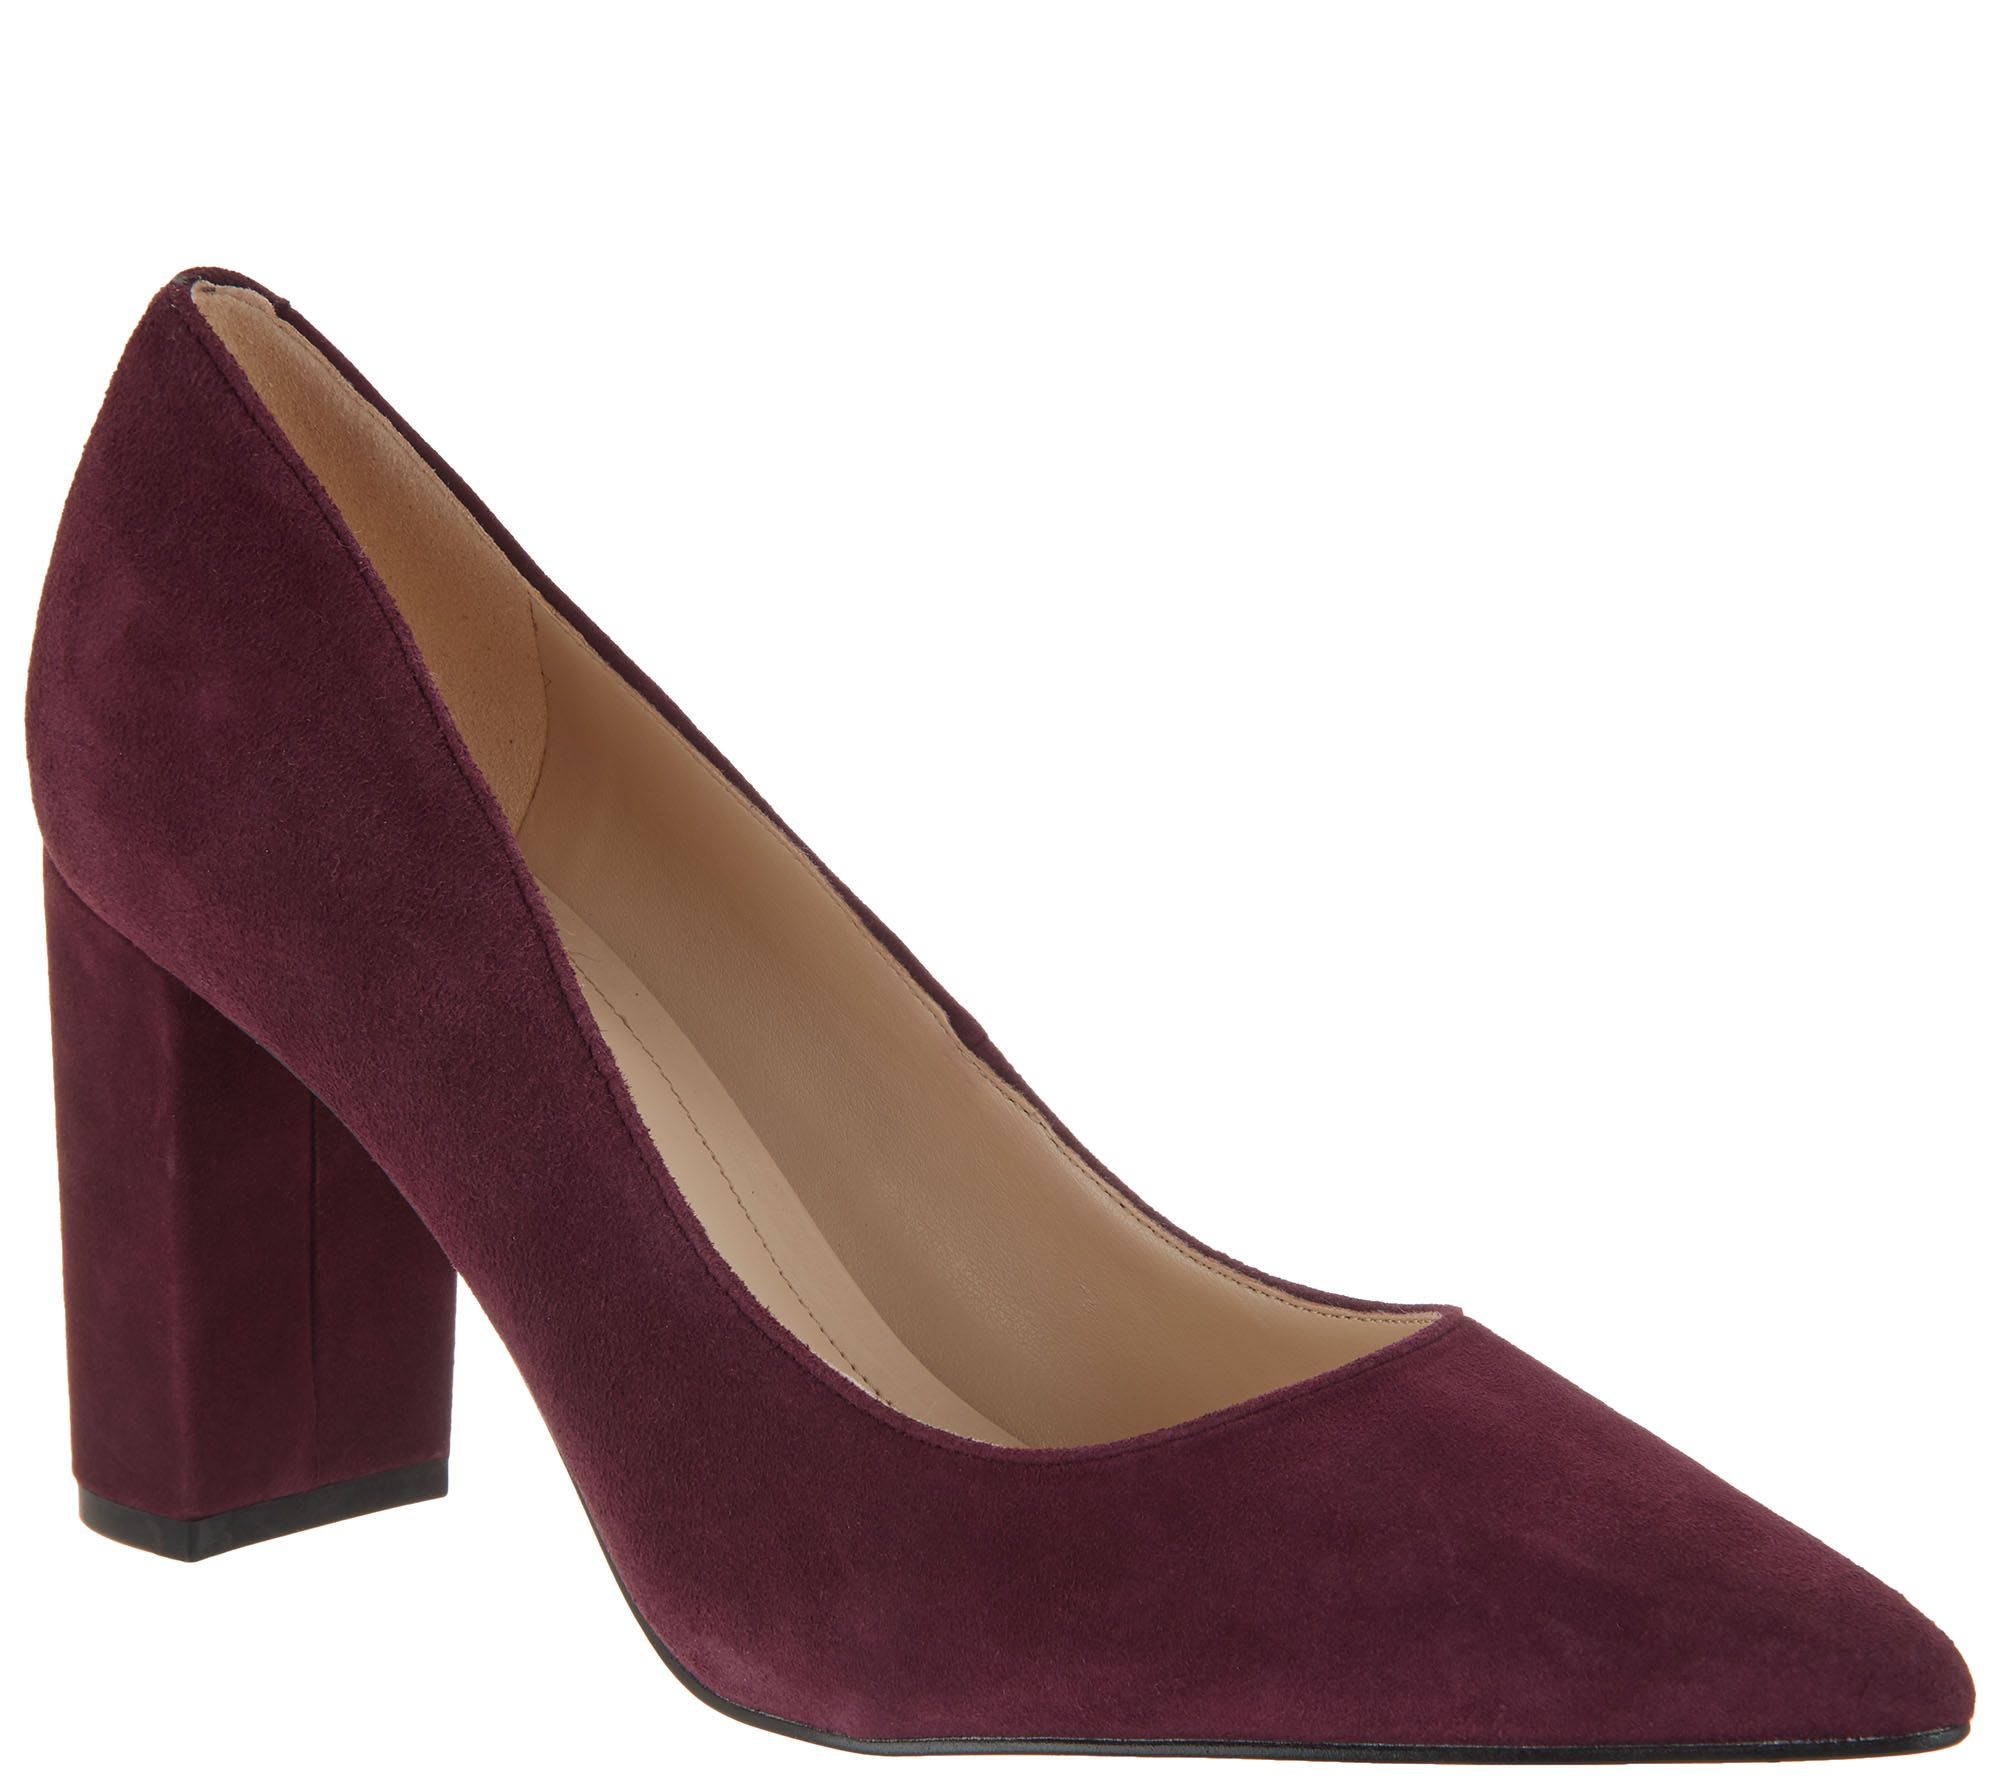 9802f27ac985 Marc Fisher Leather or Suede Block Heeled Pumps - Viviene - Page 1 — QVC.com